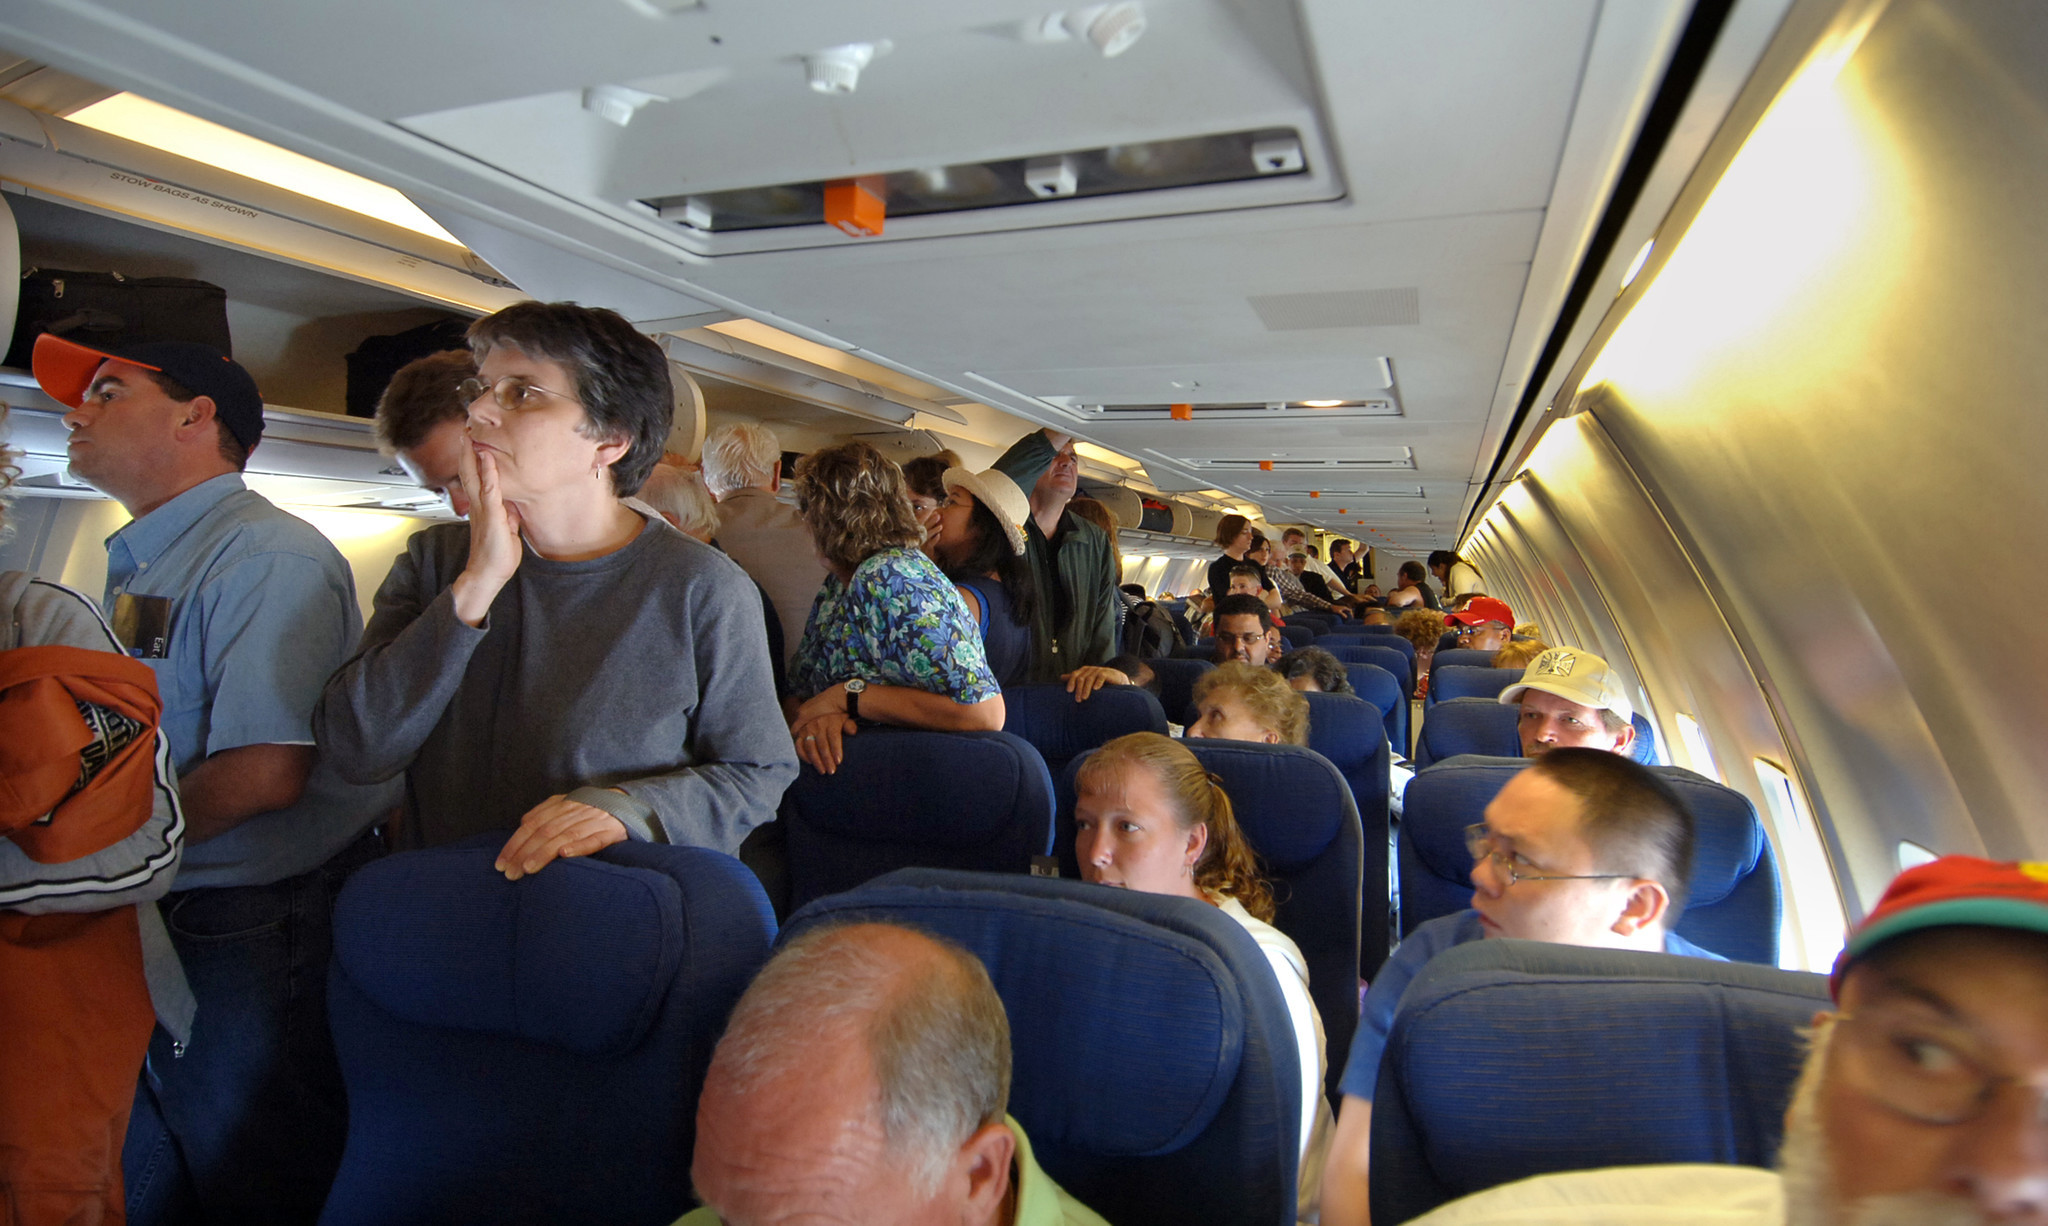 Despite Fights Over Reclining Seats Unruly Passenger